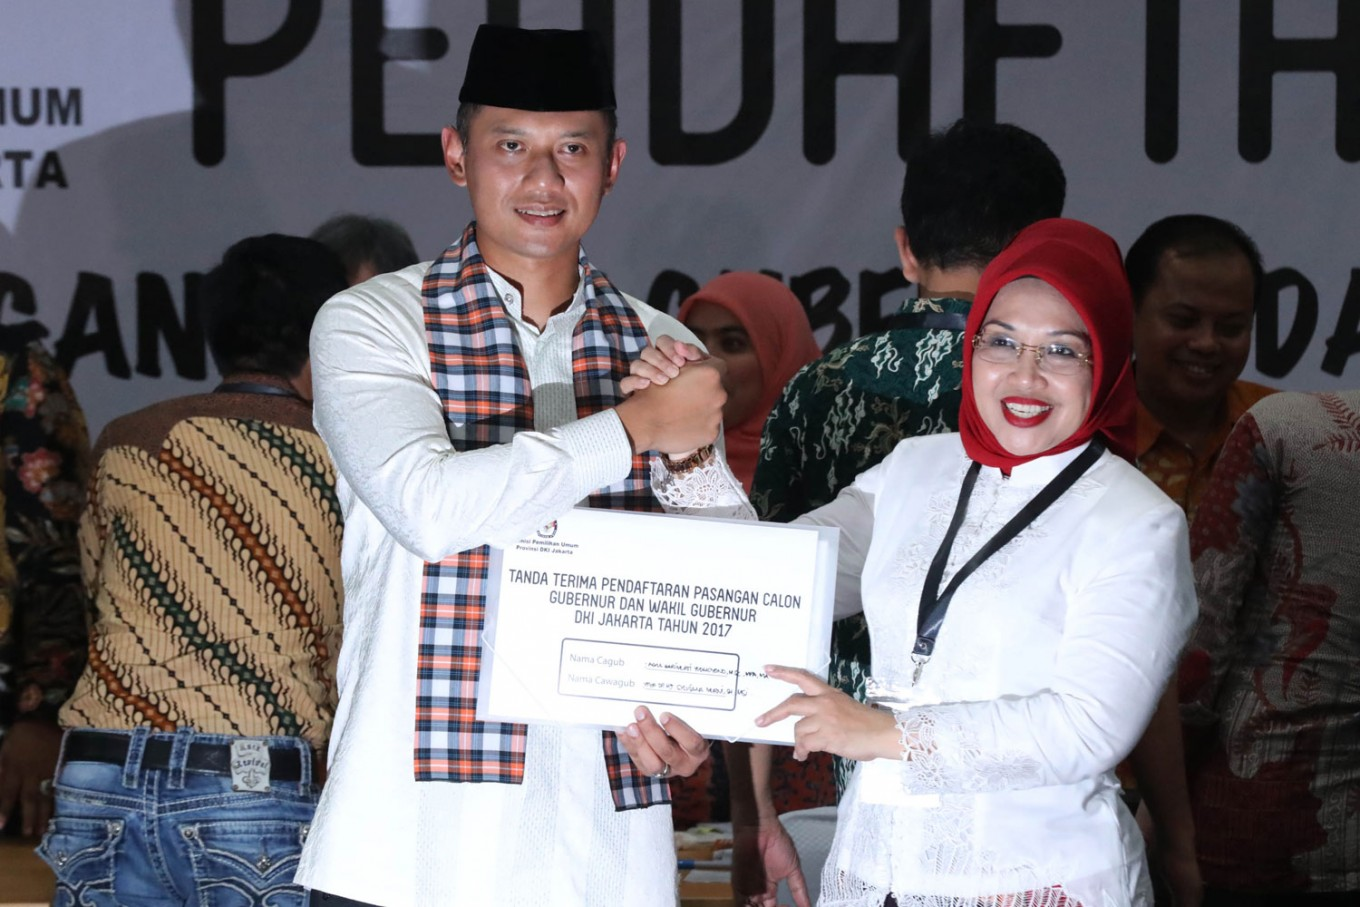 Agus Yudhoyono posts visit to Ahok on Instagram